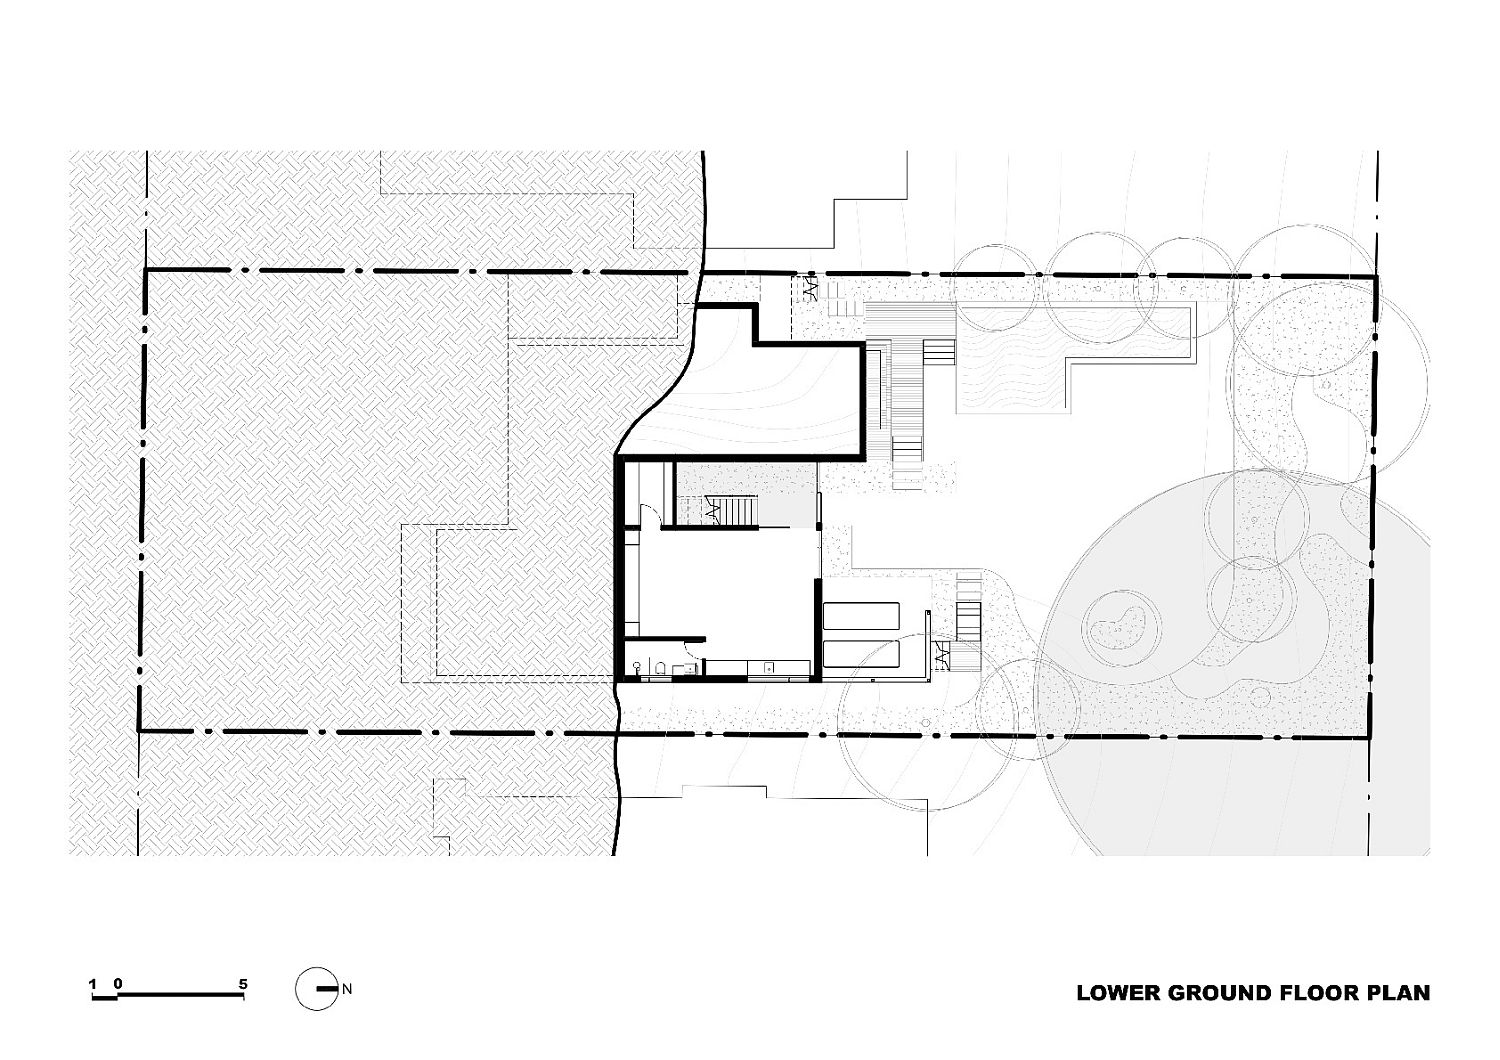 Lower ground floor plan of the Trail House